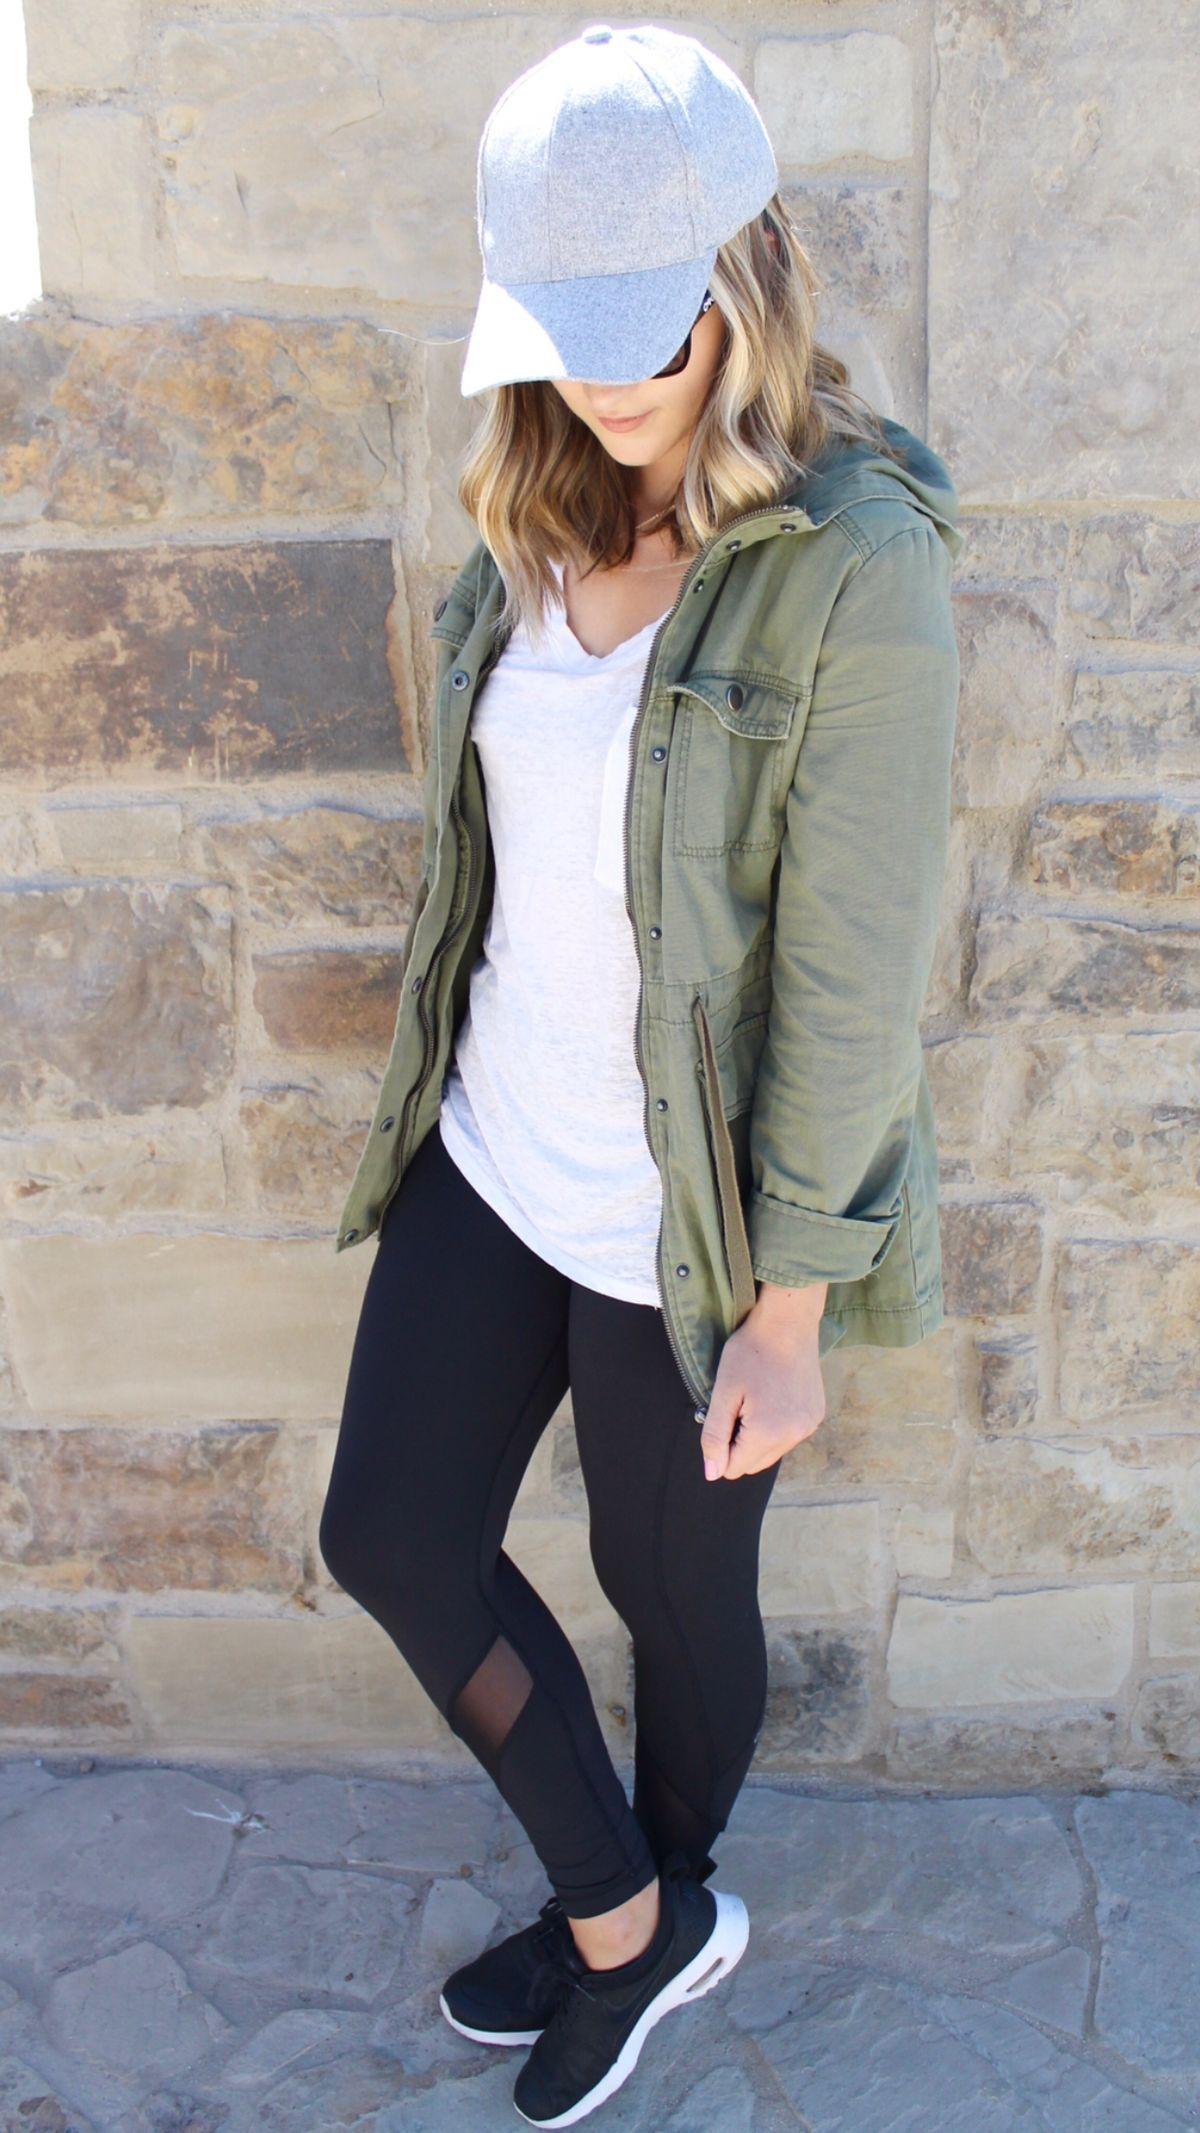 10 best casual college outfits you can totally copy #collegeoutfits